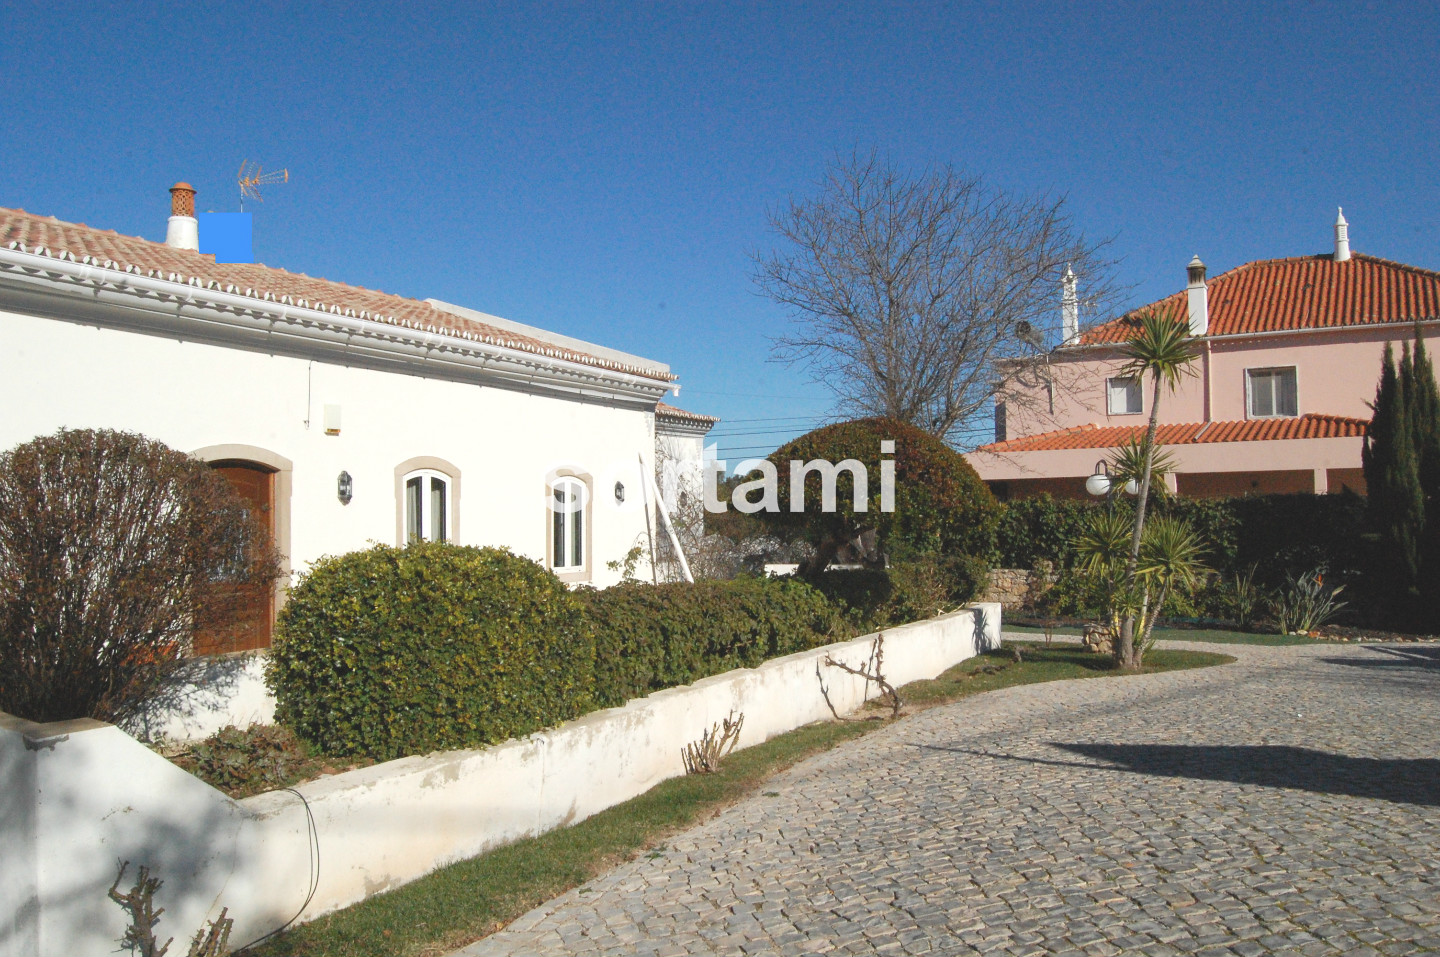 Detached house T4, Algarve, Sao Bras de Alportel